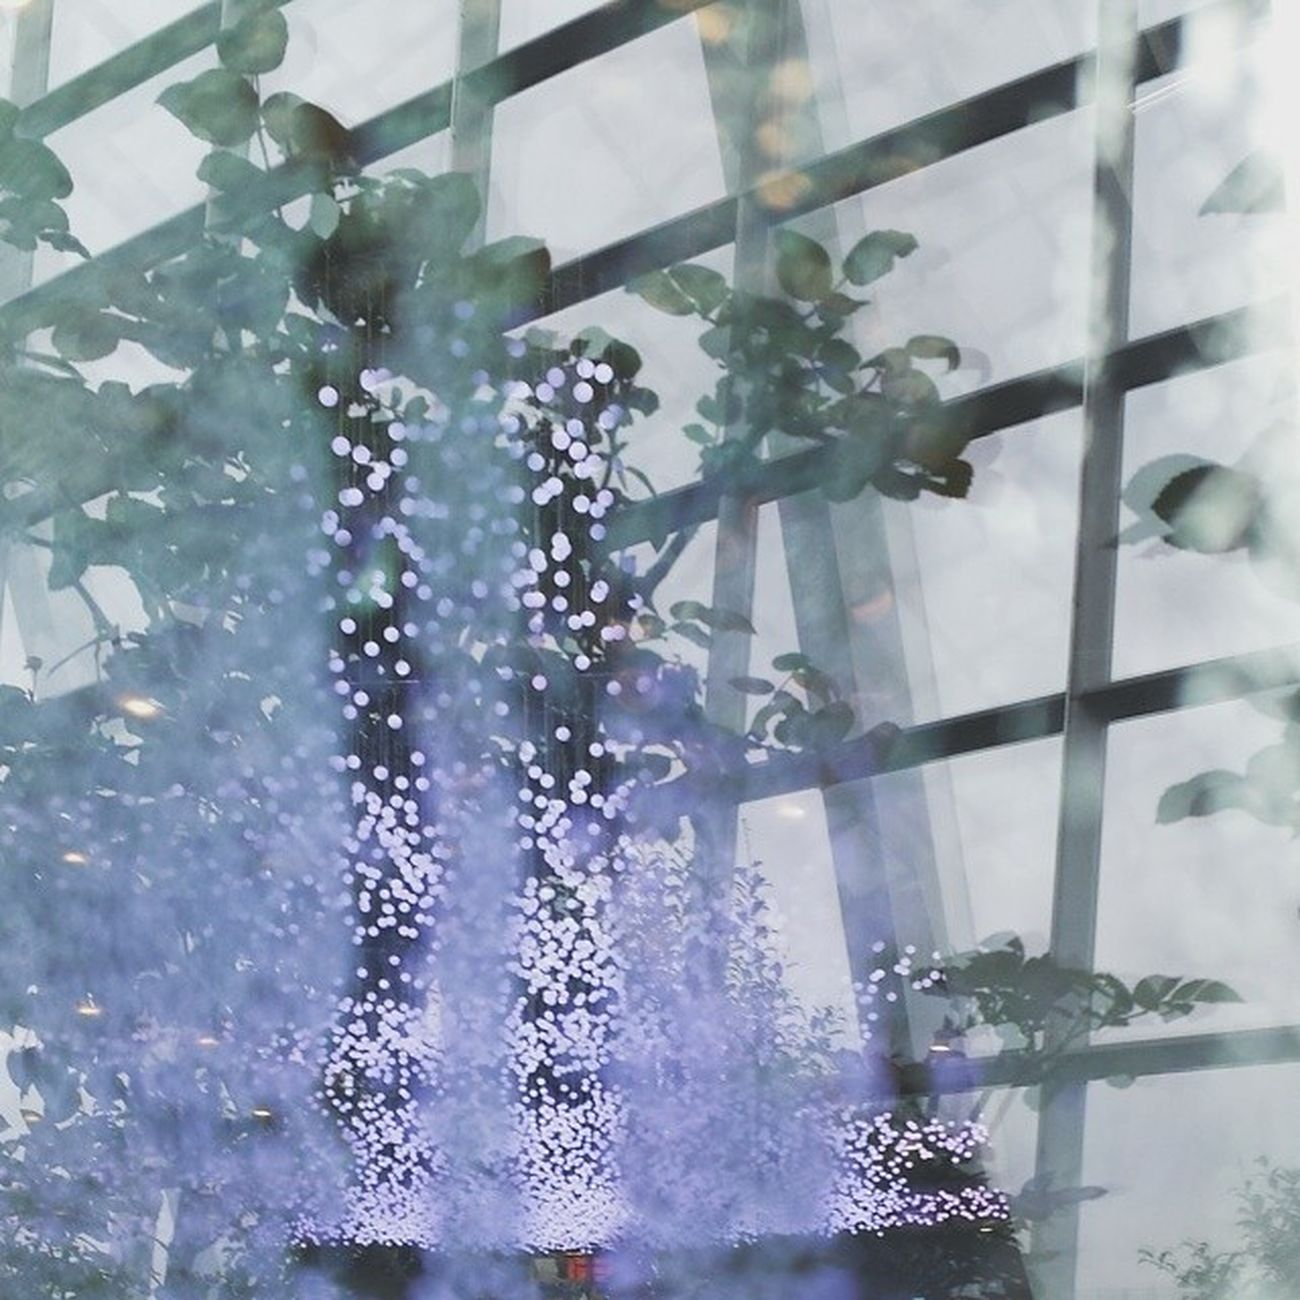 see through four elements : water, lights, plants, structure Jheowphotograph Courtesyofjheow